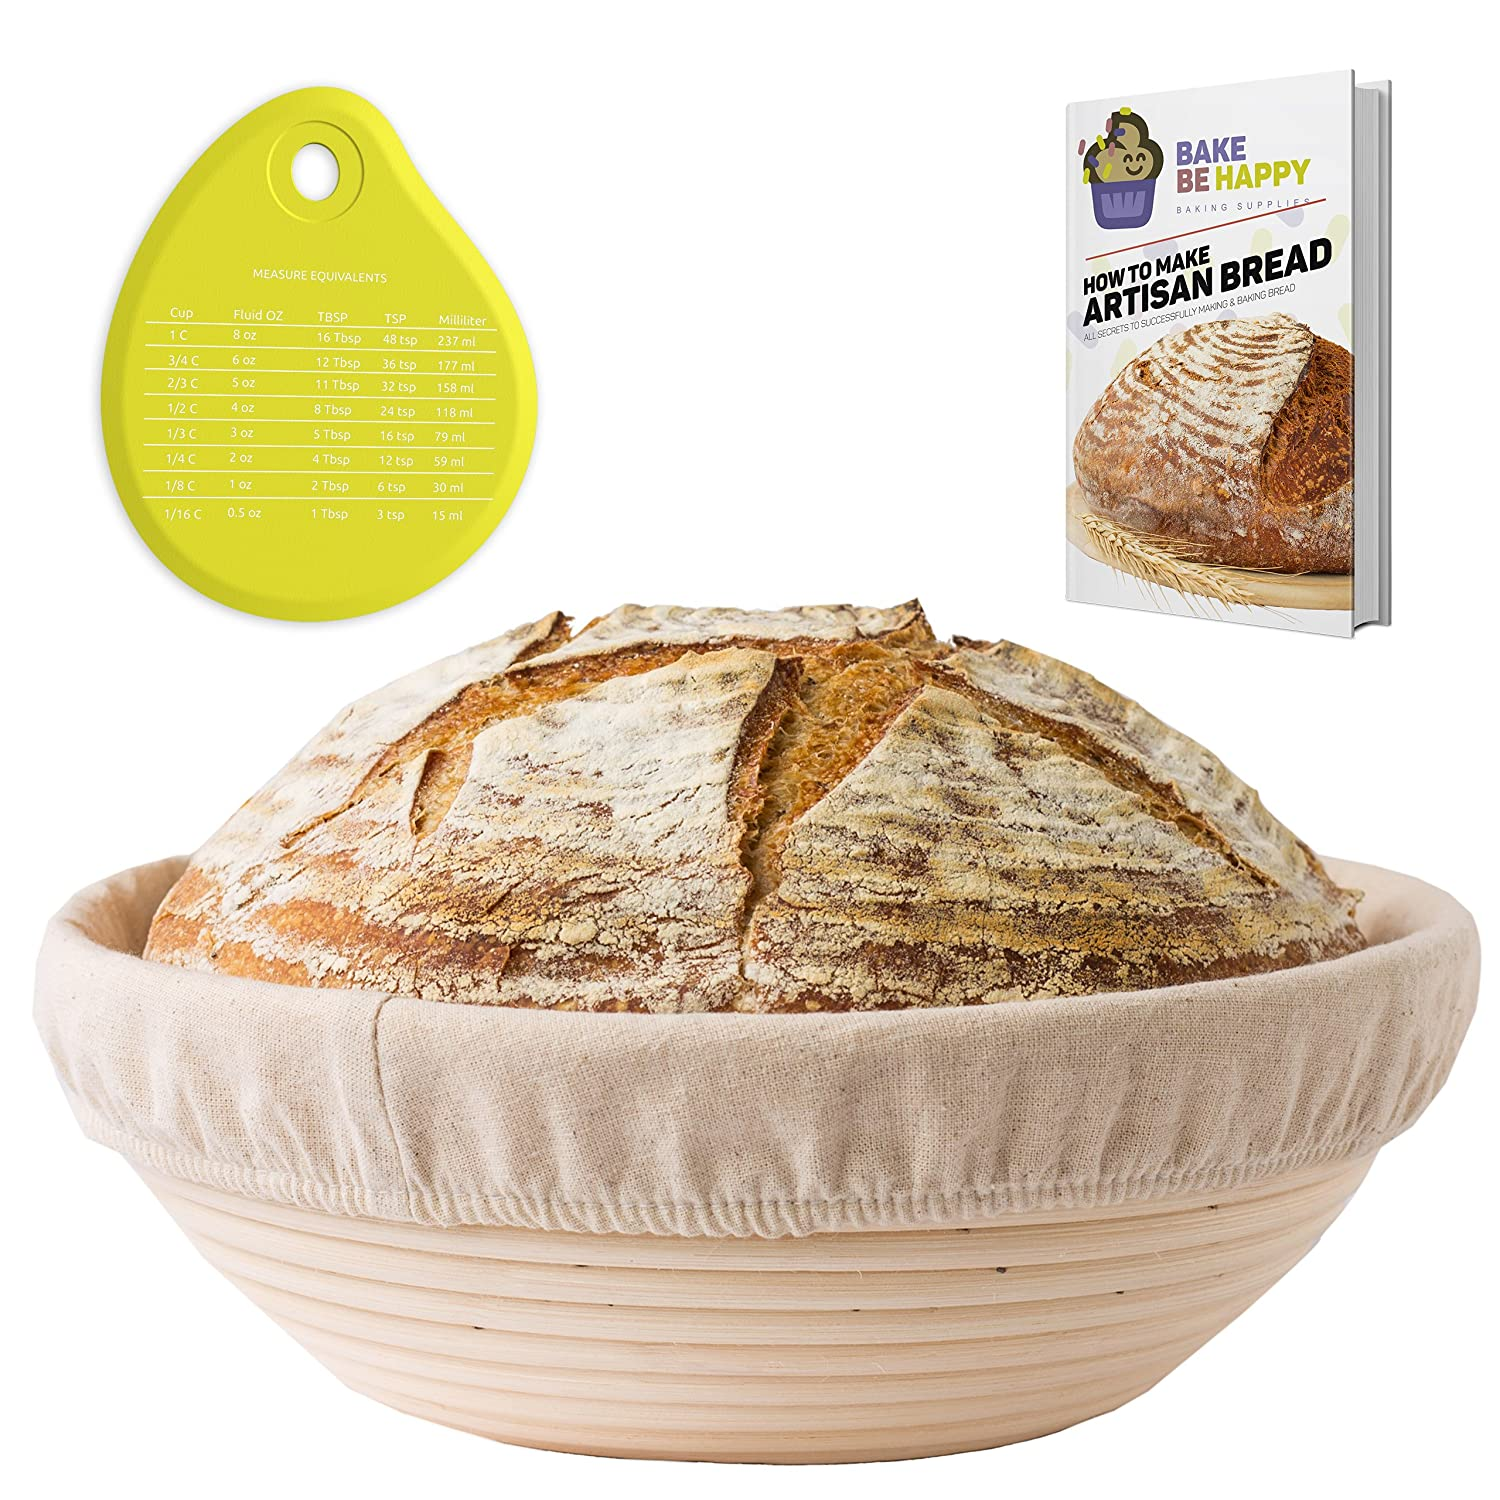 Banneton Proofing Basket Set - Round Brotform 10 Inch Kit - Removable Cloth Linen Liner - Natural Cane Rattan Bowl - Ideal for Dough Rising - eBook - Instructions Bake Be Happy COMINHKPR123621